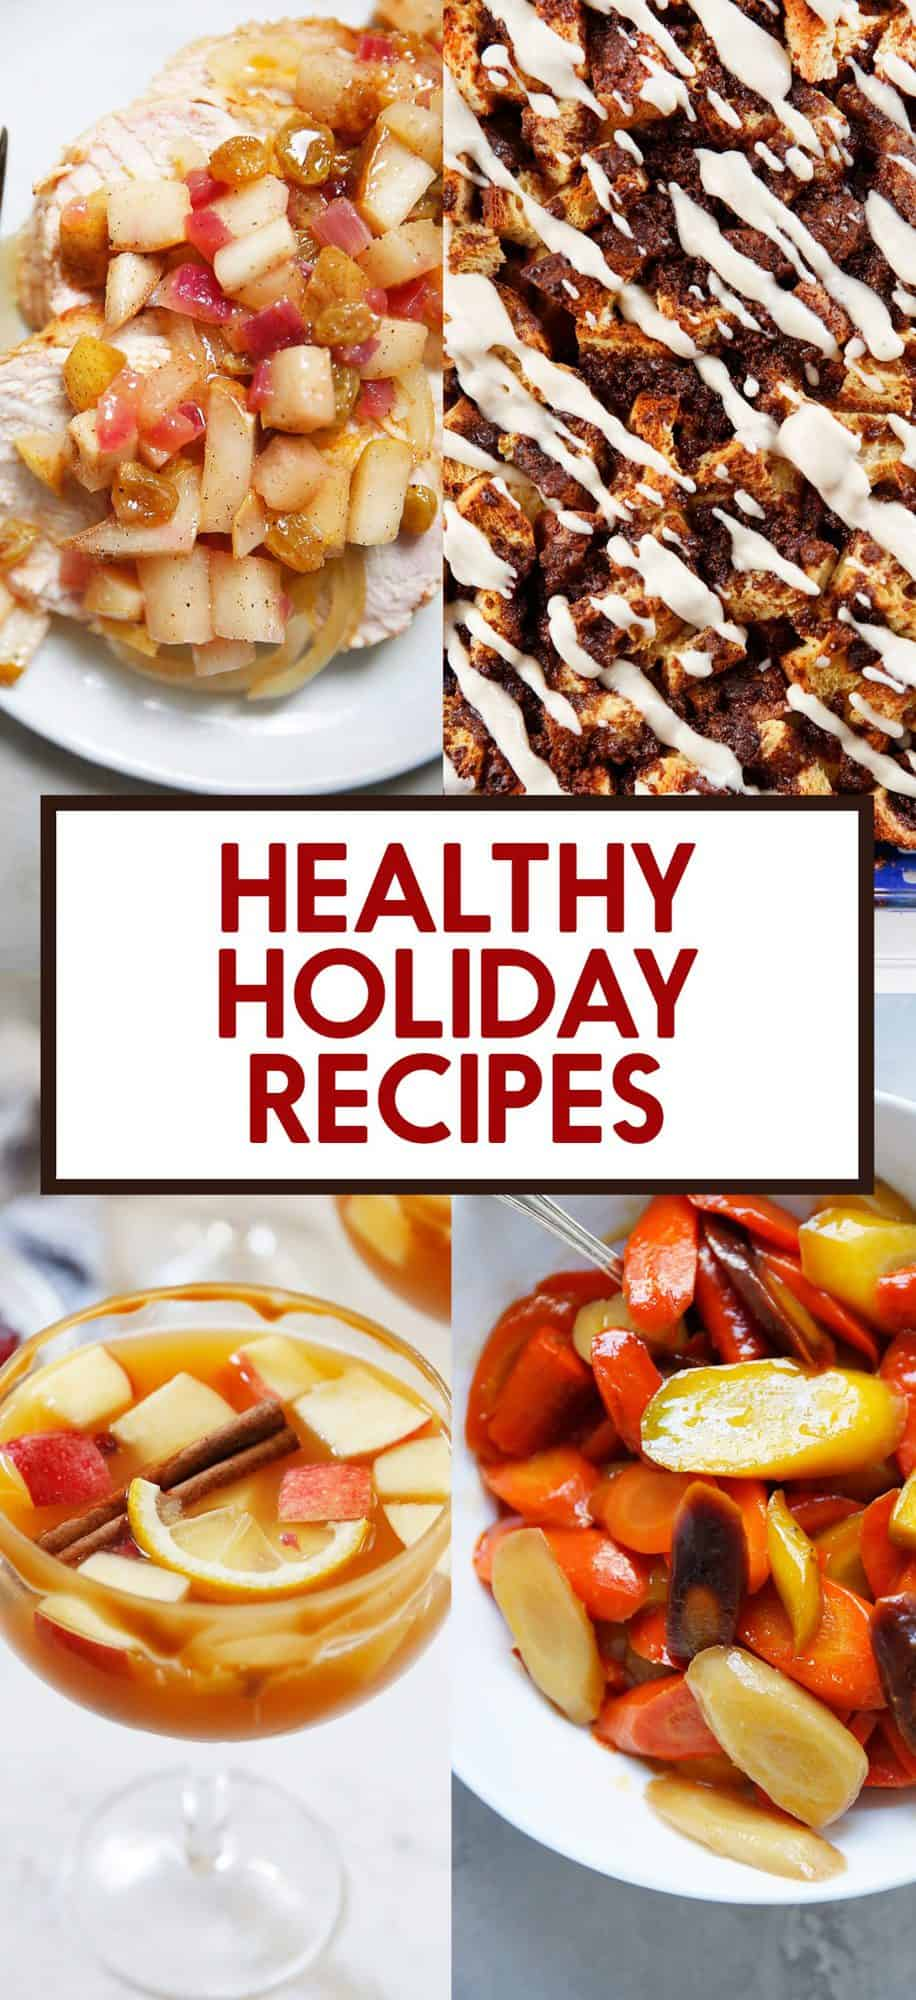 Healthy holiday recipes round up